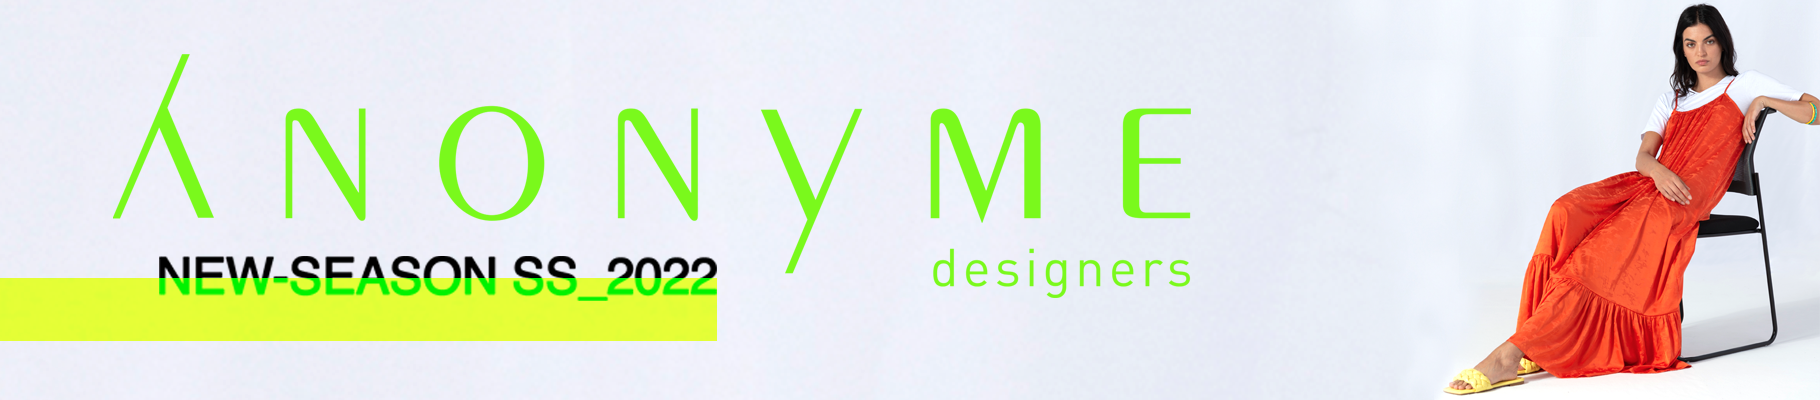 ANONYME designers - Shop online for Women